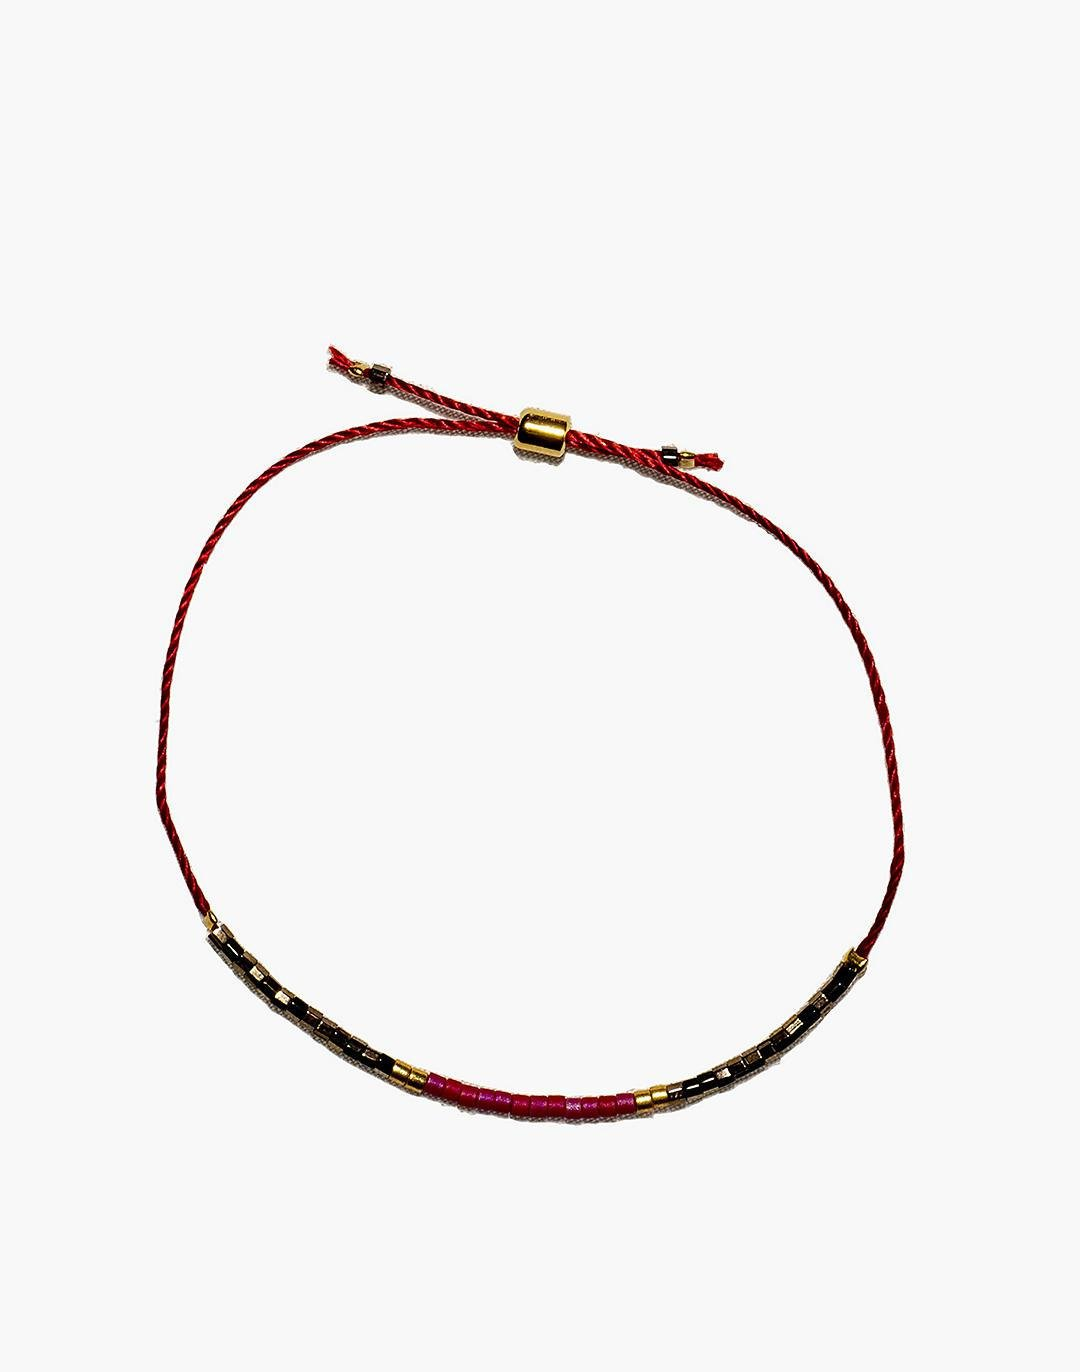 Cast of Stones Beaded Intention Bracelet in Red and Metallic